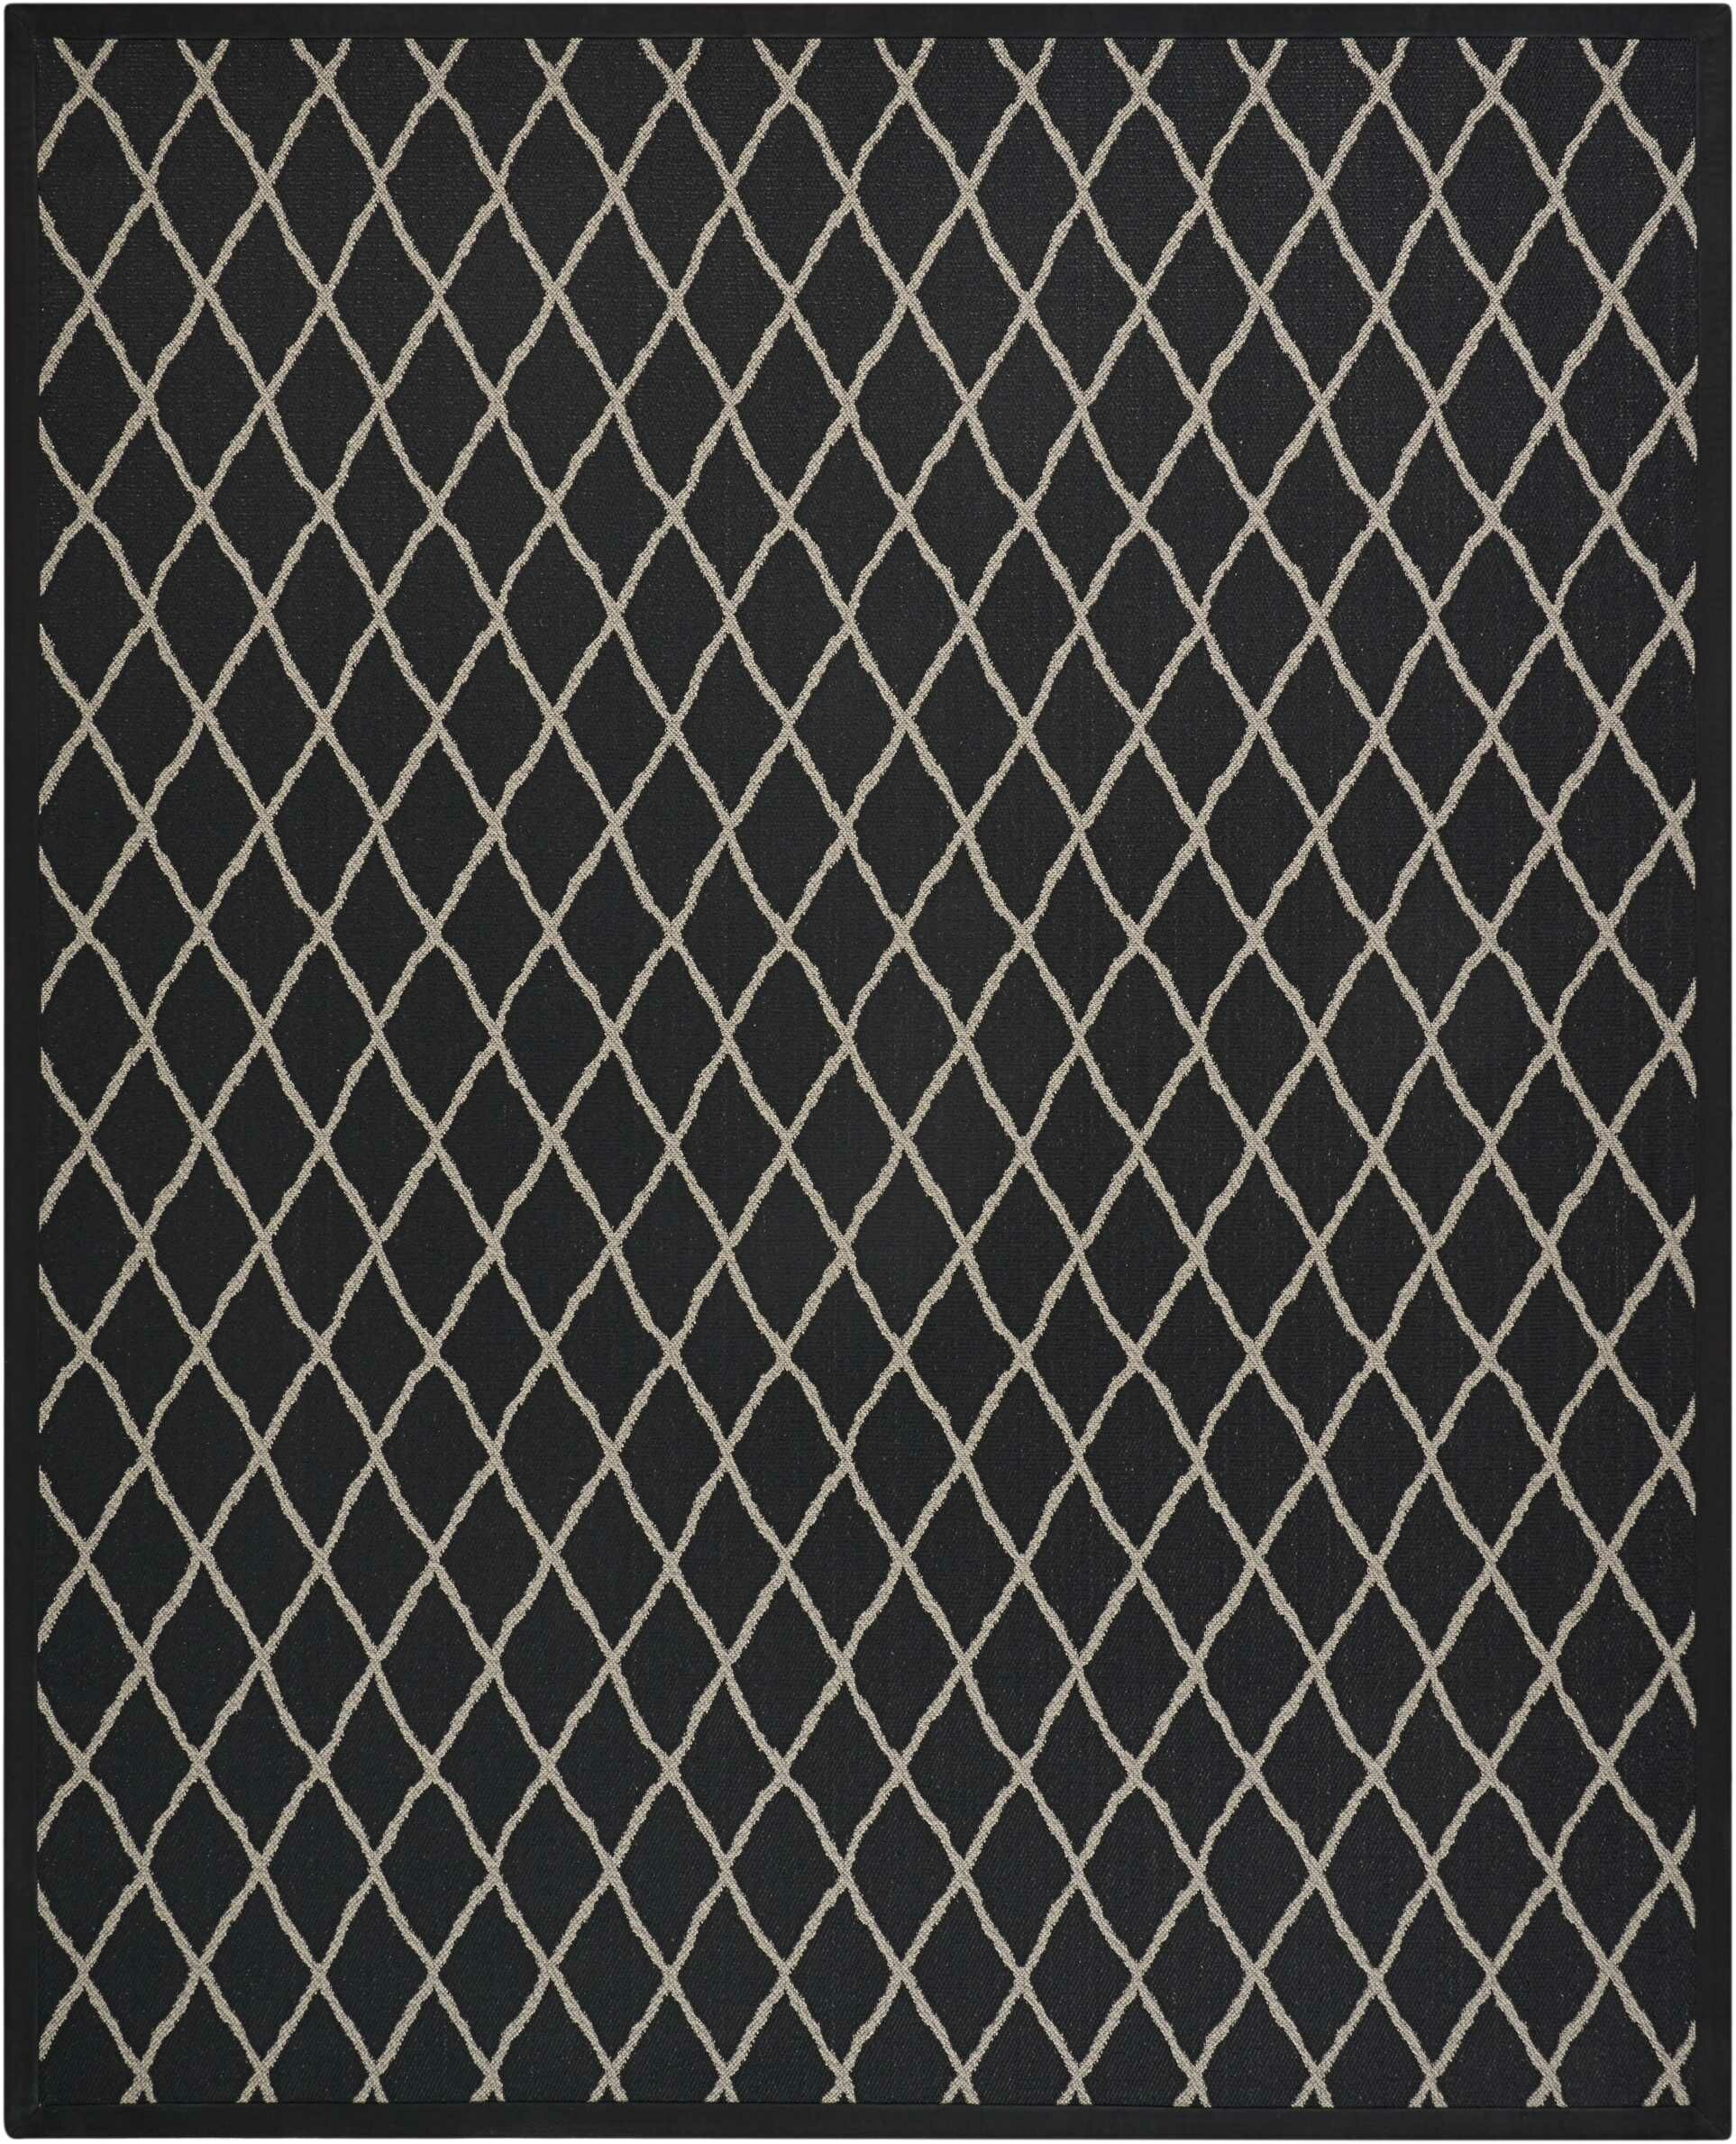 Northridge Black Pearl Indoor/Outdoor Area Rug Rug Size: Rectangle 12' x 15'